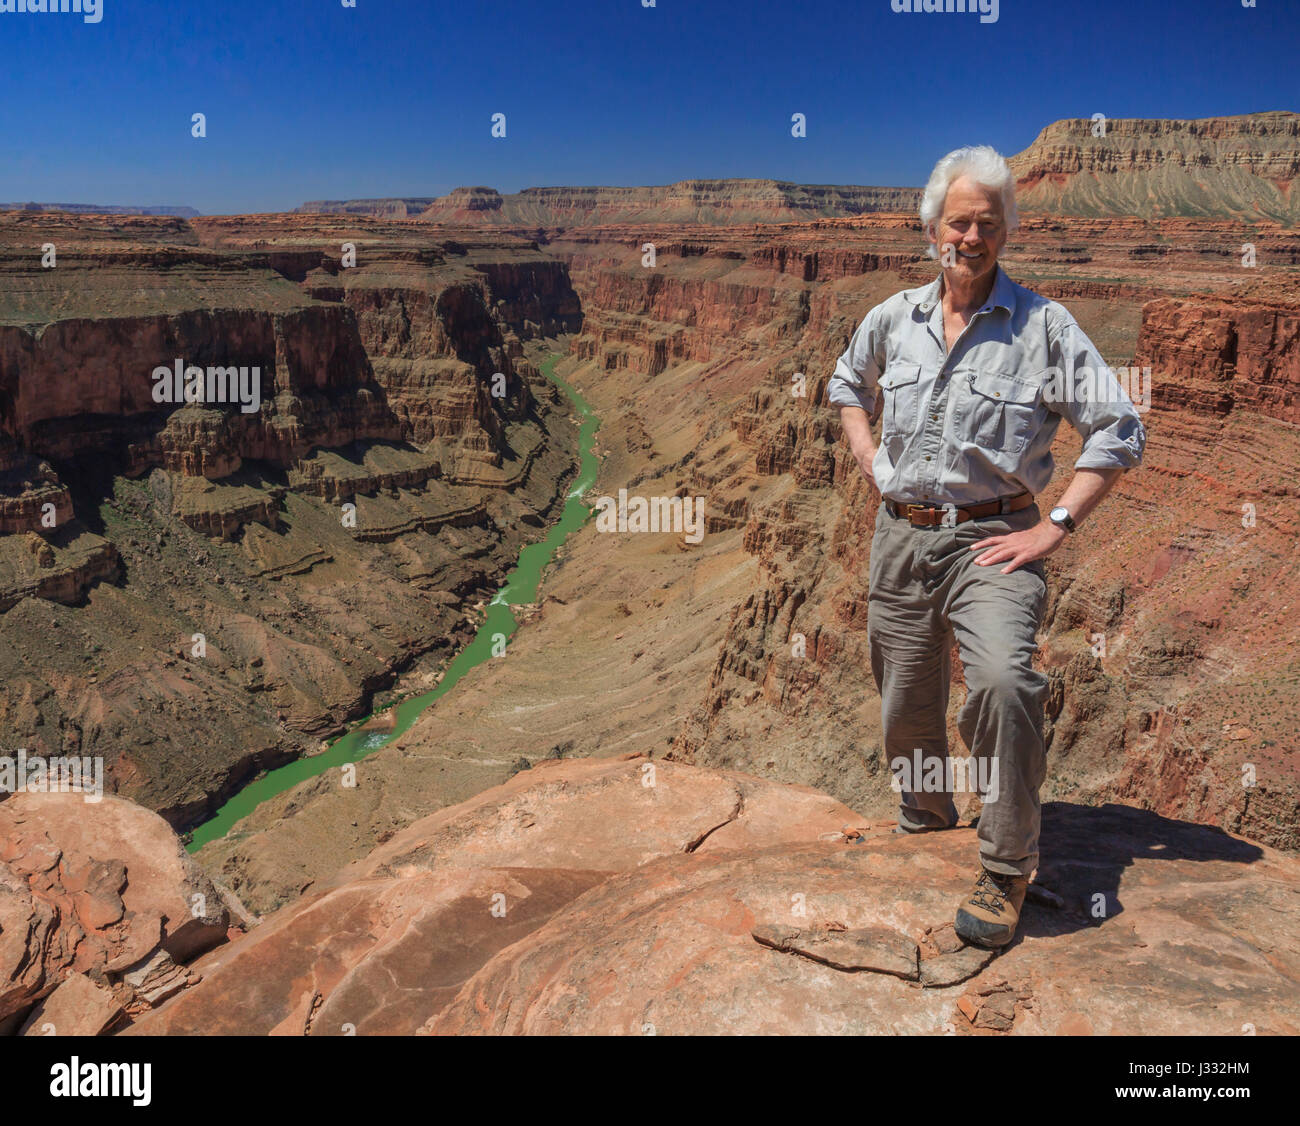 self portrait of john lambing above the fishtail rapids area of the colorado river in grand canyon national park, arizona Stock Photo